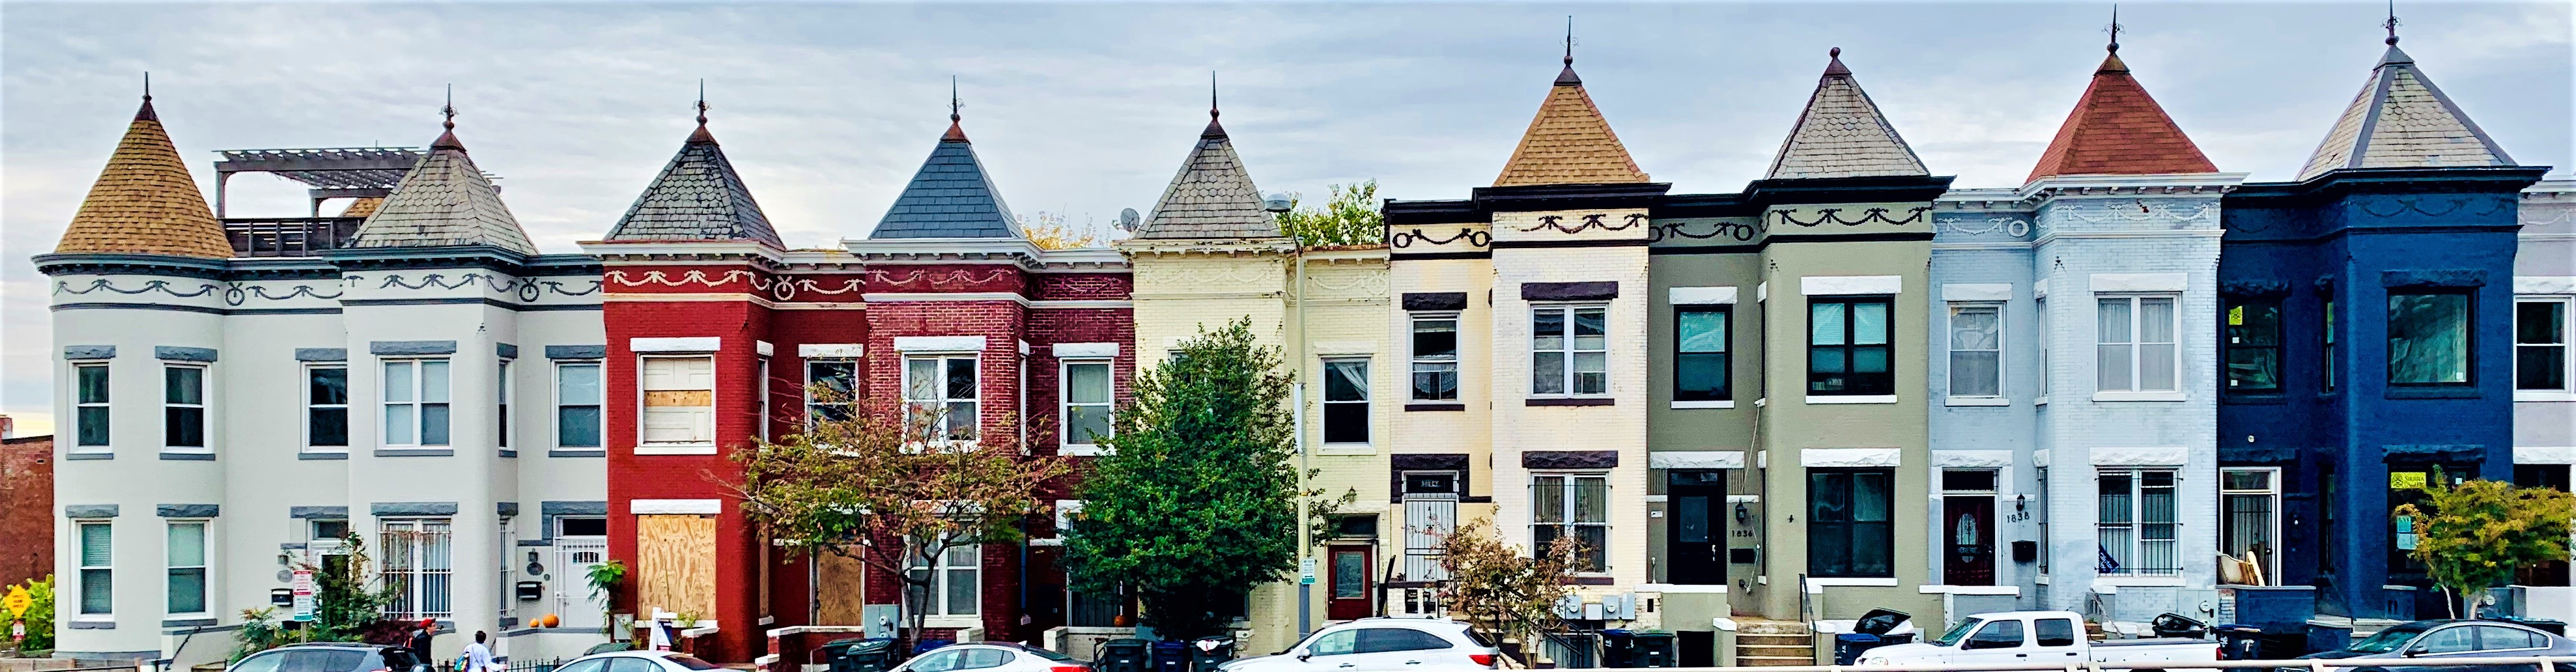 Washington, DC Row Homes For Sale. Near North Capitol street. Artyom Shmatko Realtor